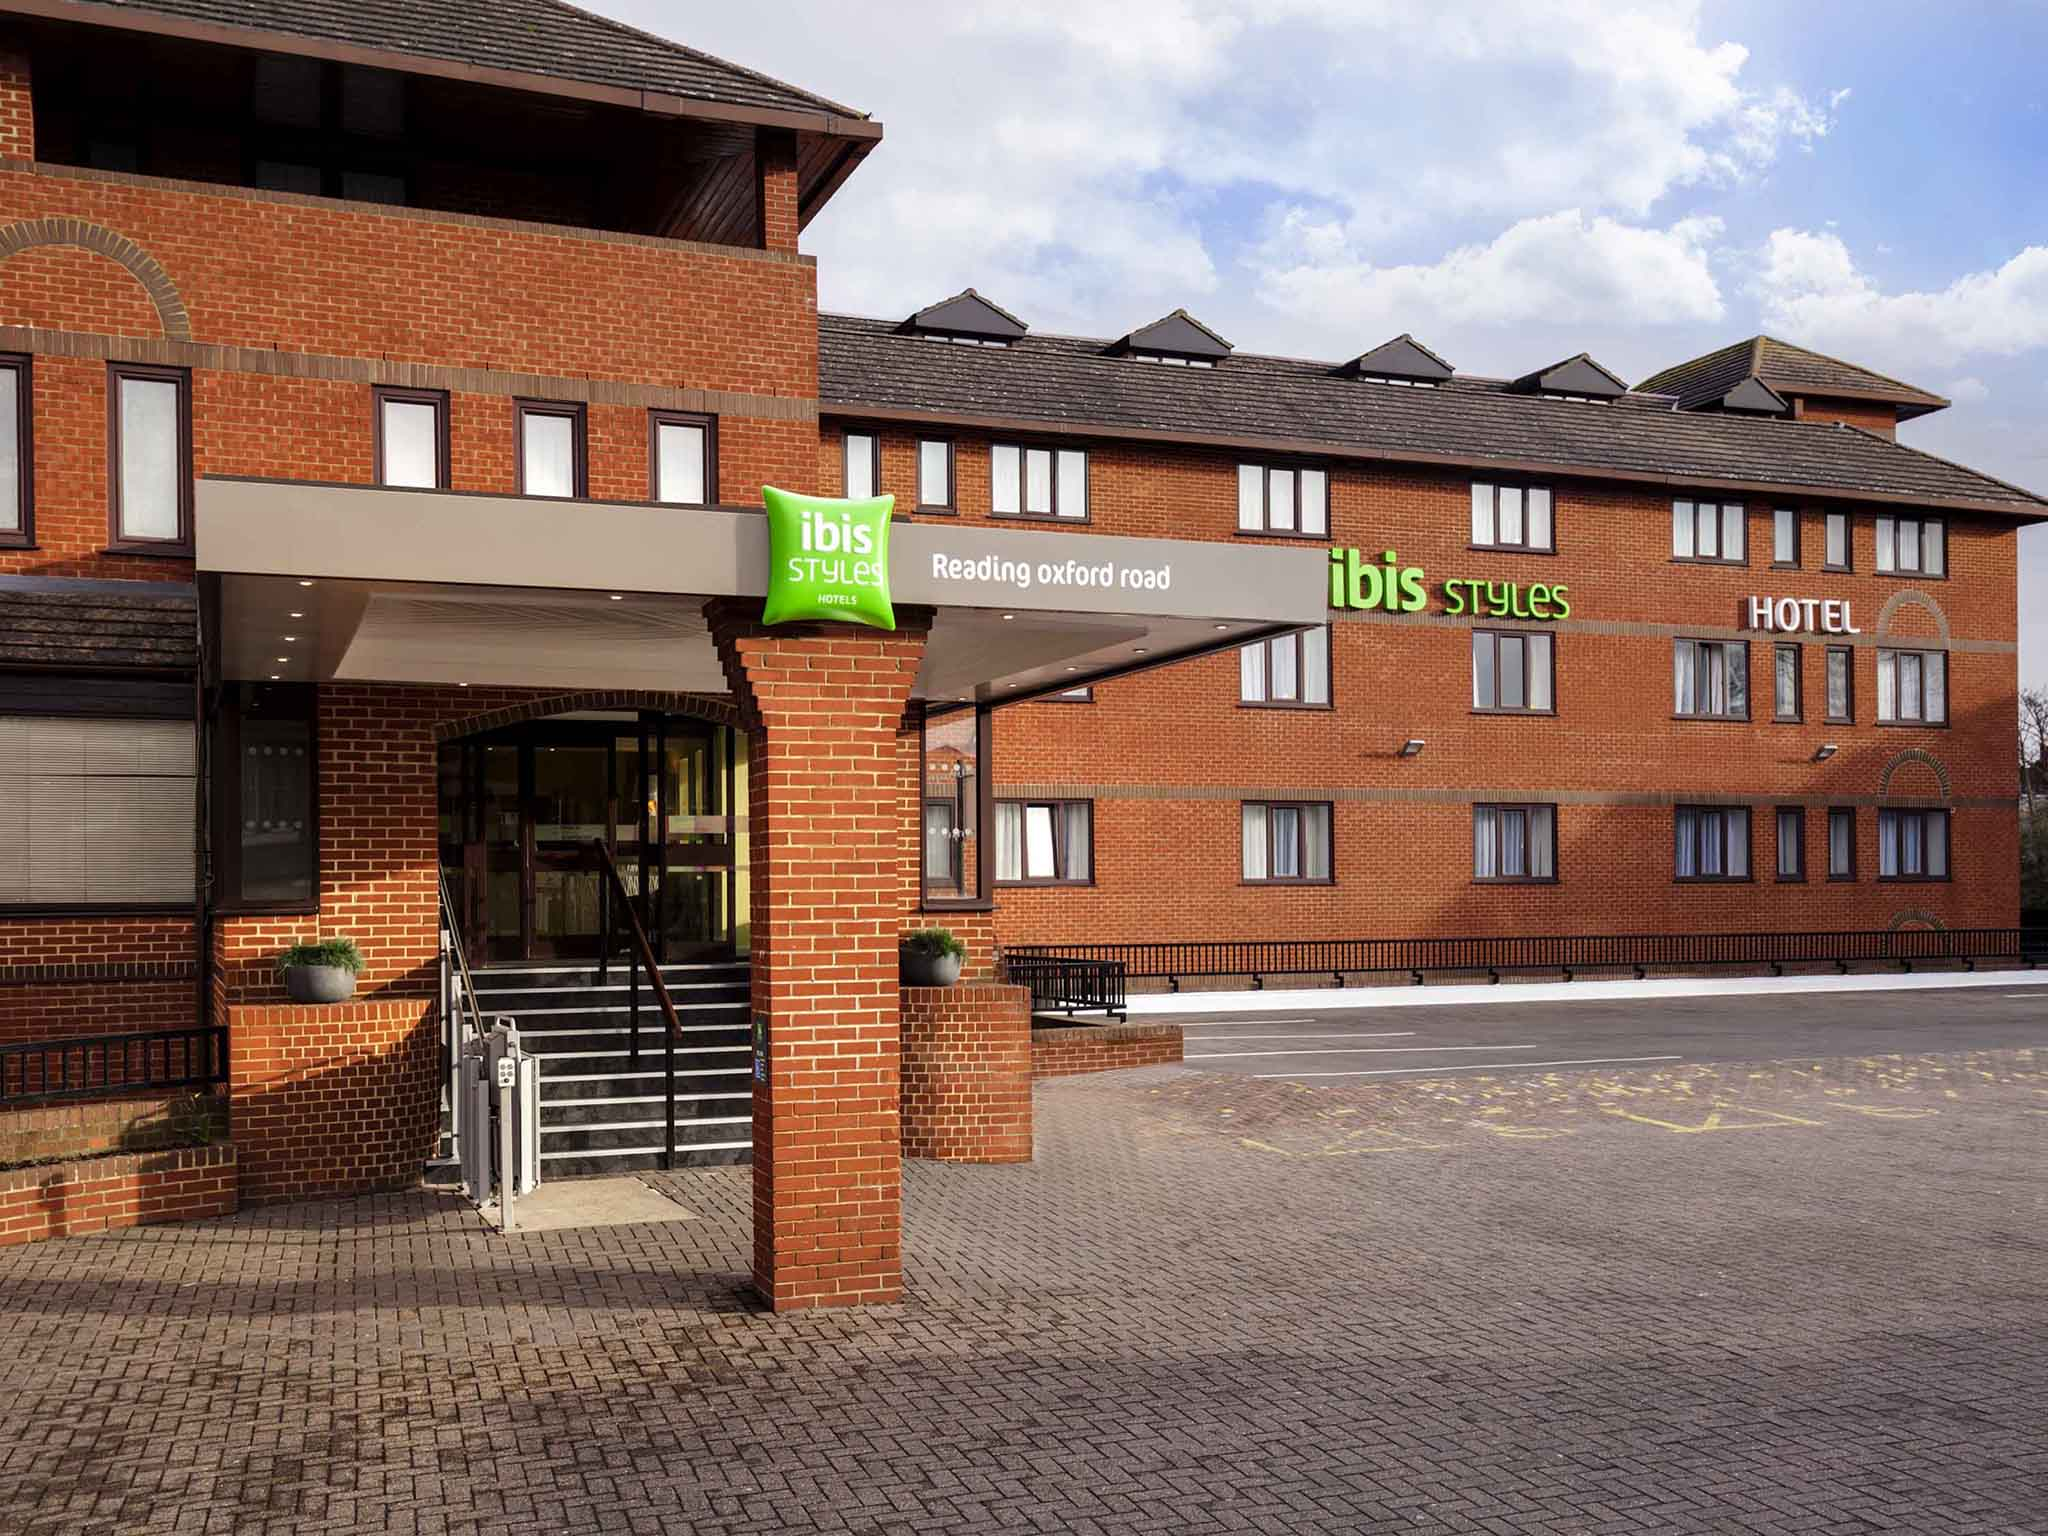 Hotel – ibis Styles Reading Oxford Rd